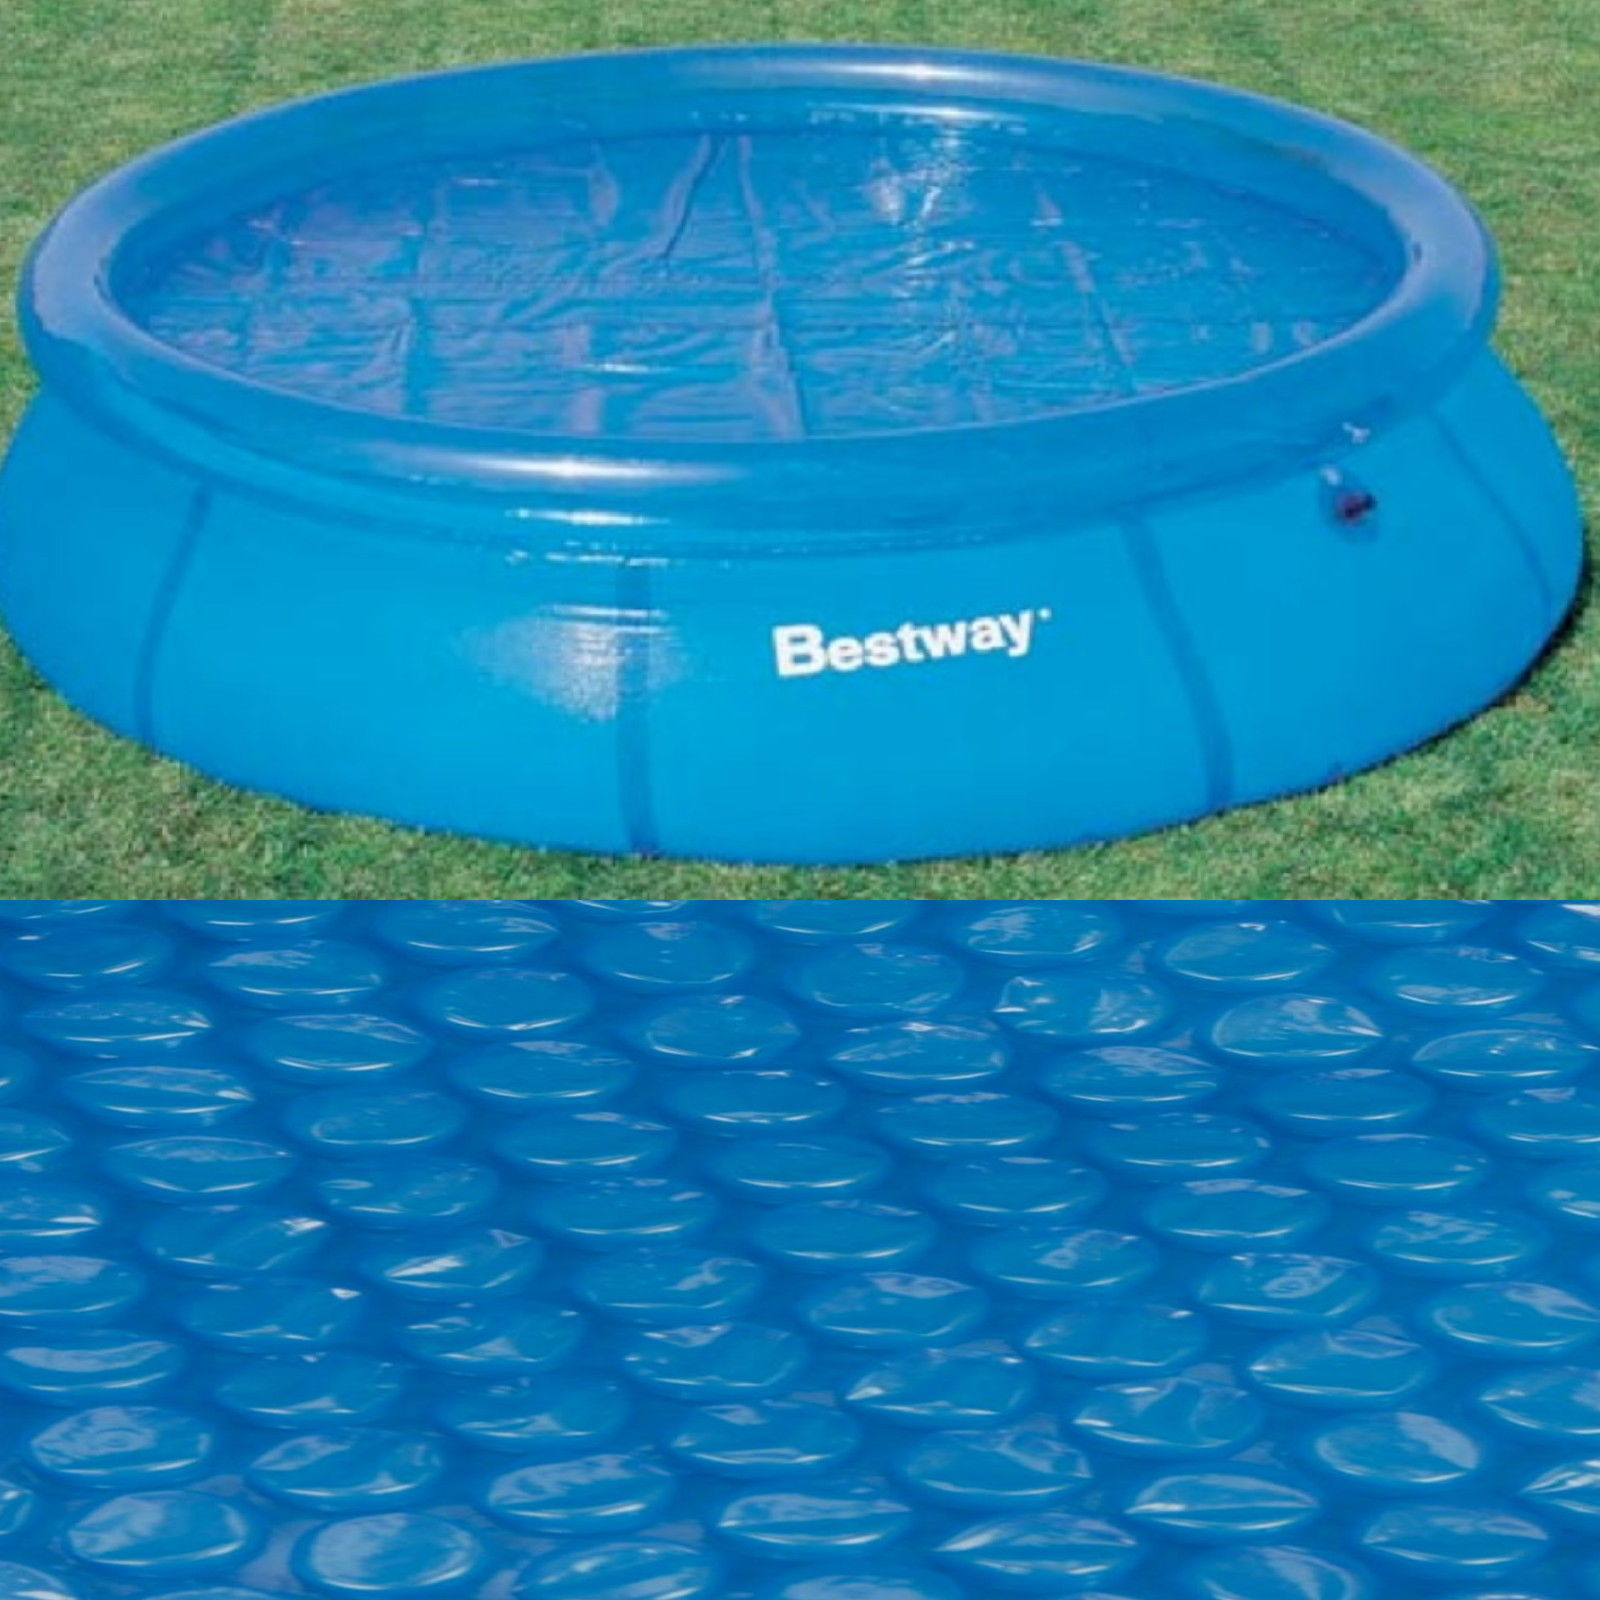 Bestway 10ft id al qualit solaire piscine housse protection sunlight chauf - Ideal protection piscine ...